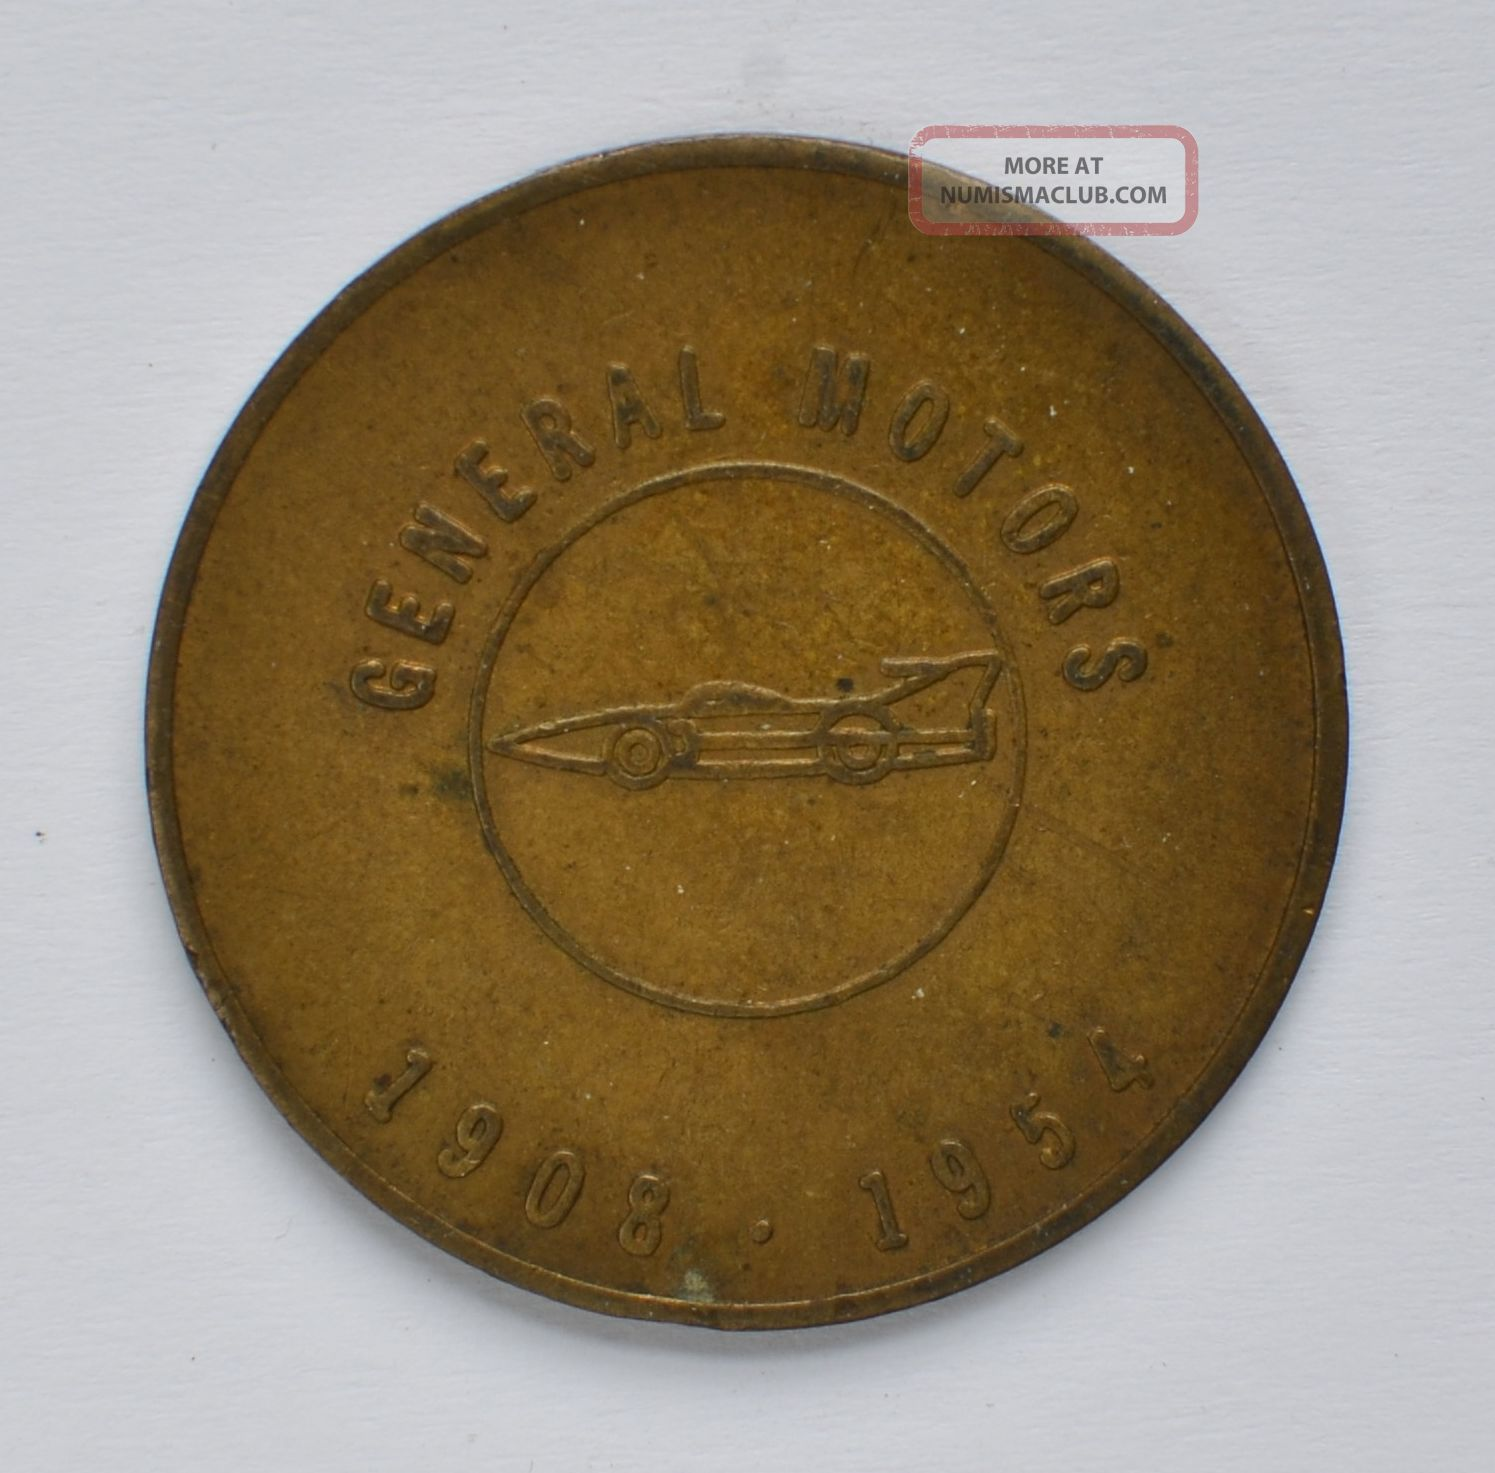 General Motors 1908 - 1954 Builds Its First 50 Million Cars Token Exonumia photo